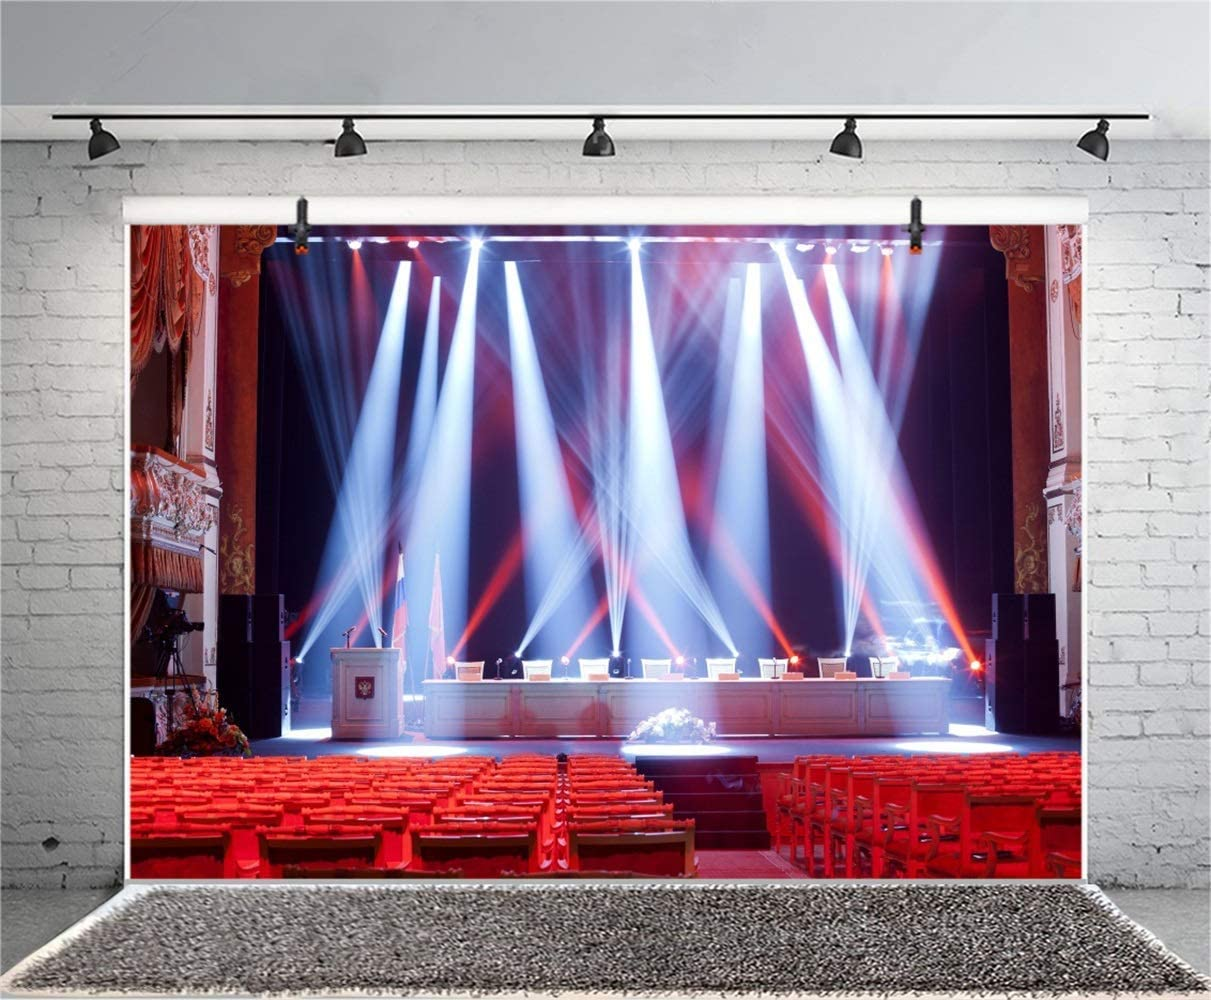 8x6.5ft Big Hall Interior Bright Stage Backdrop Polyester Bright Interlaced White Red Spotlights Vacant Red Seats Background Award Ceremony Talent Show School Openning Ceremony Photocall Shoot